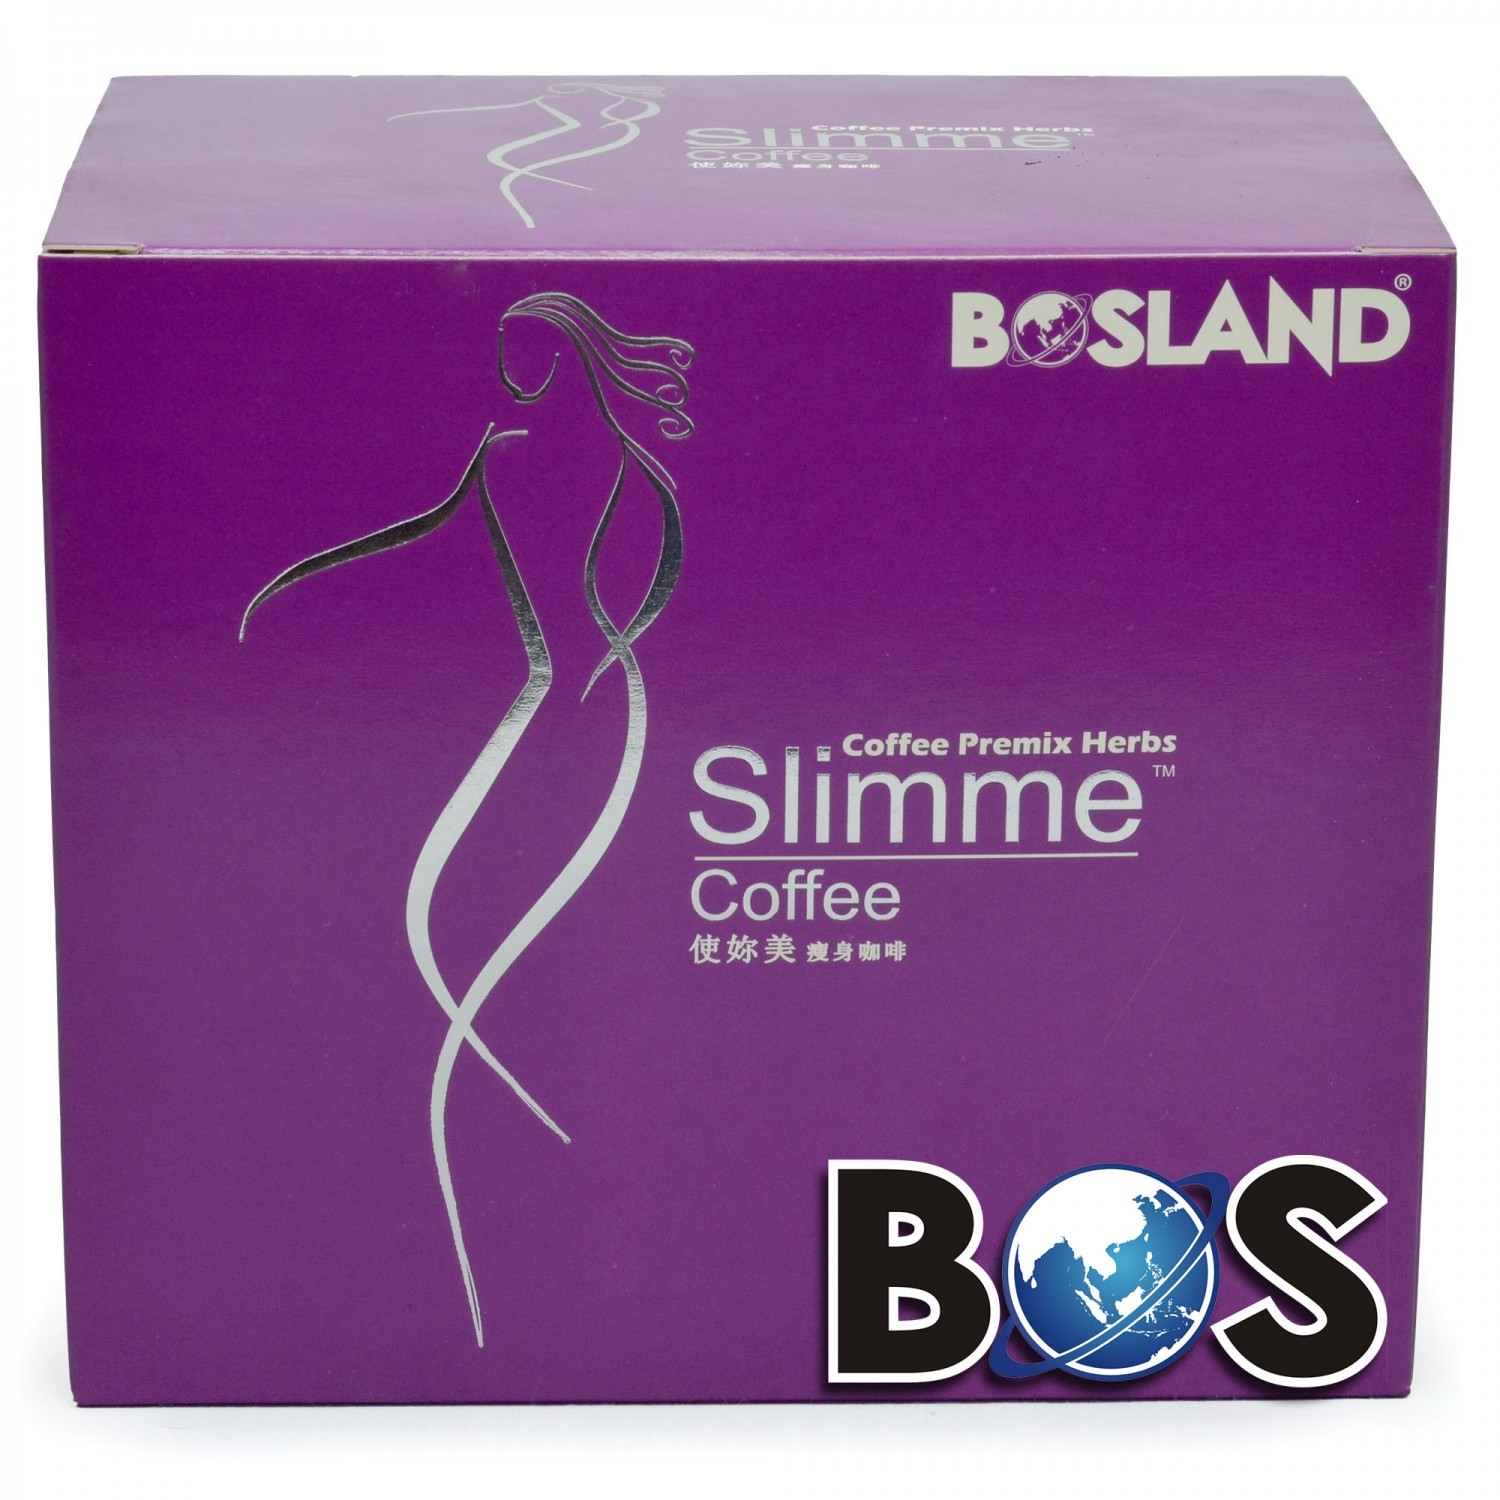 Slimme Coffee